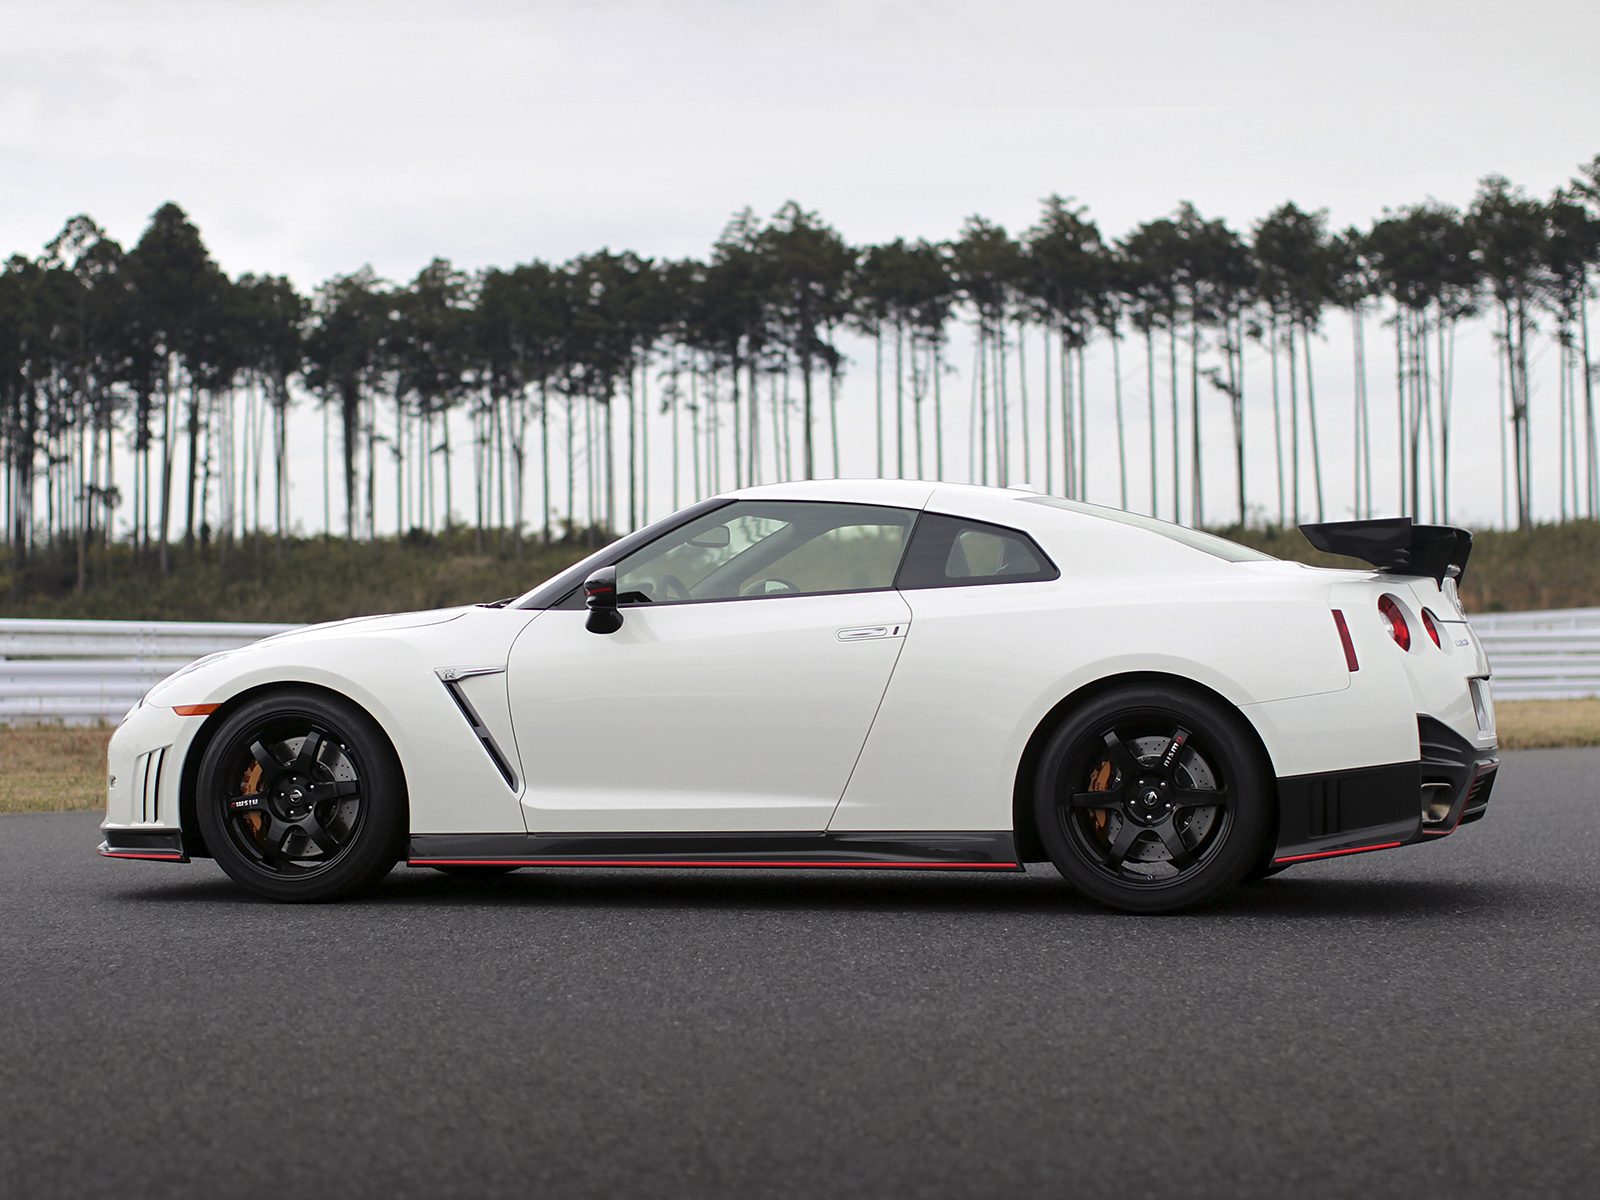 2014 nismo nissan gt r r35 supercar g wallpaper 1600x1200 202235 wallpaperup. Black Bedroom Furniture Sets. Home Design Ideas